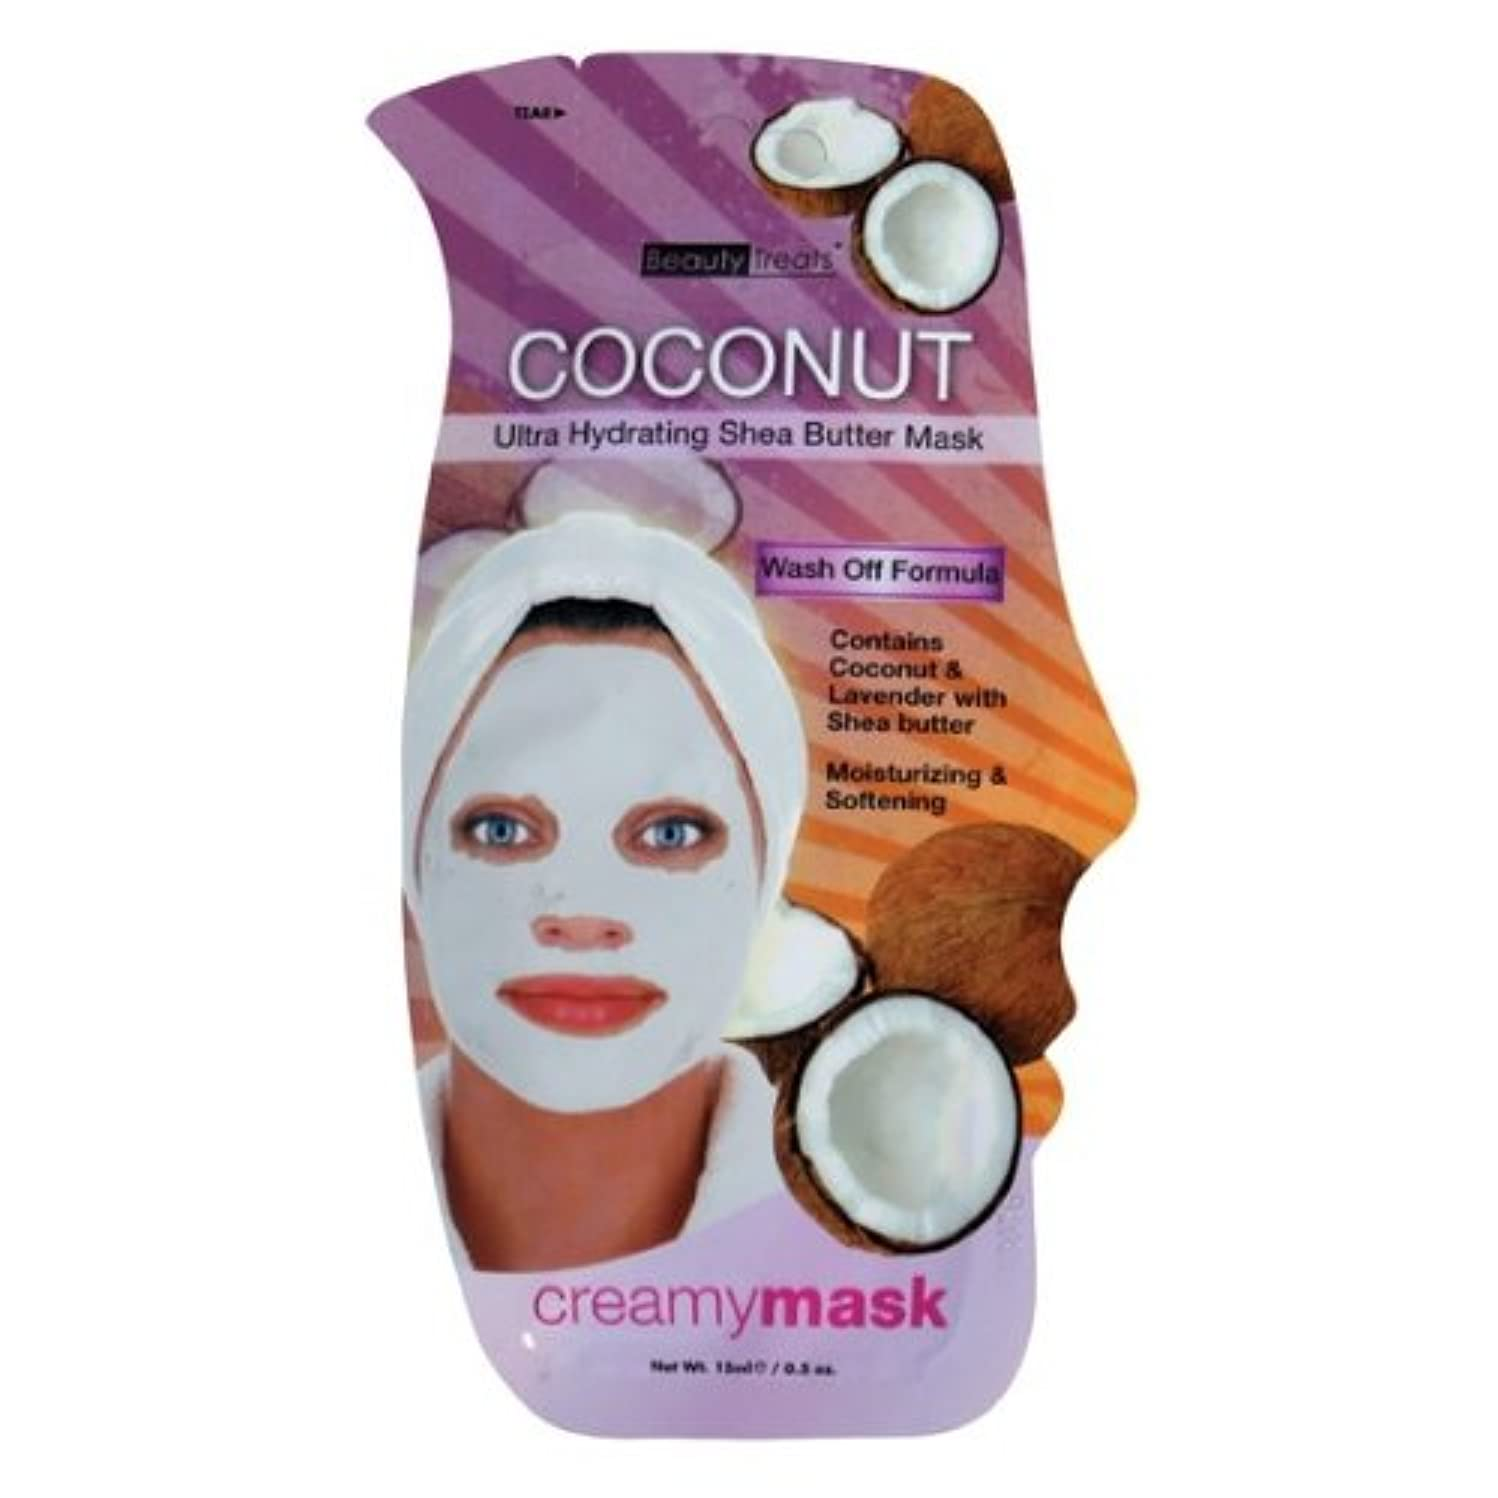 エキスガロン震えるBEAUTY TREATS Coconut Ultra Hydrating Shea Butter Mask - Coconut (並行輸入品)